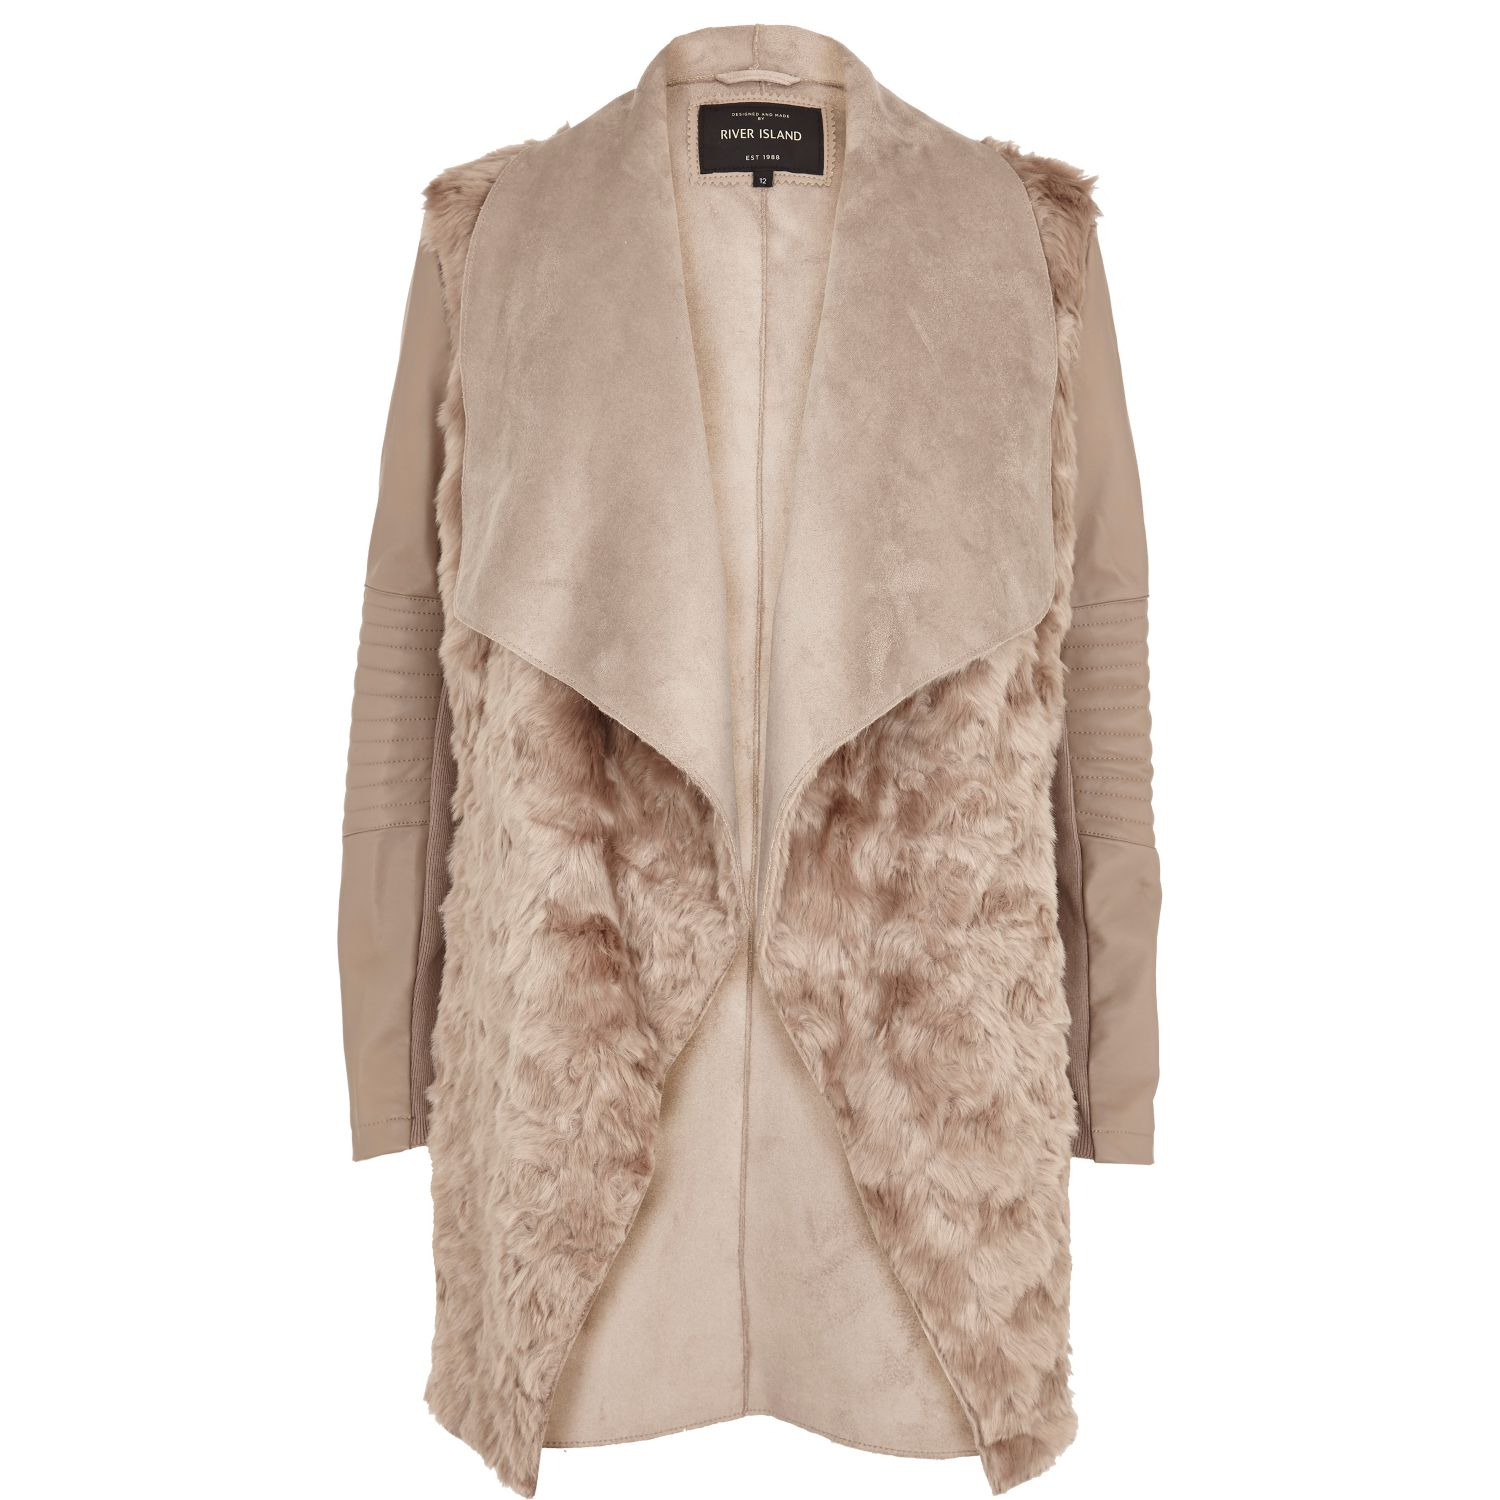 River island Beige Shearling Panel Waterfall Jacket in Natural | Lyst